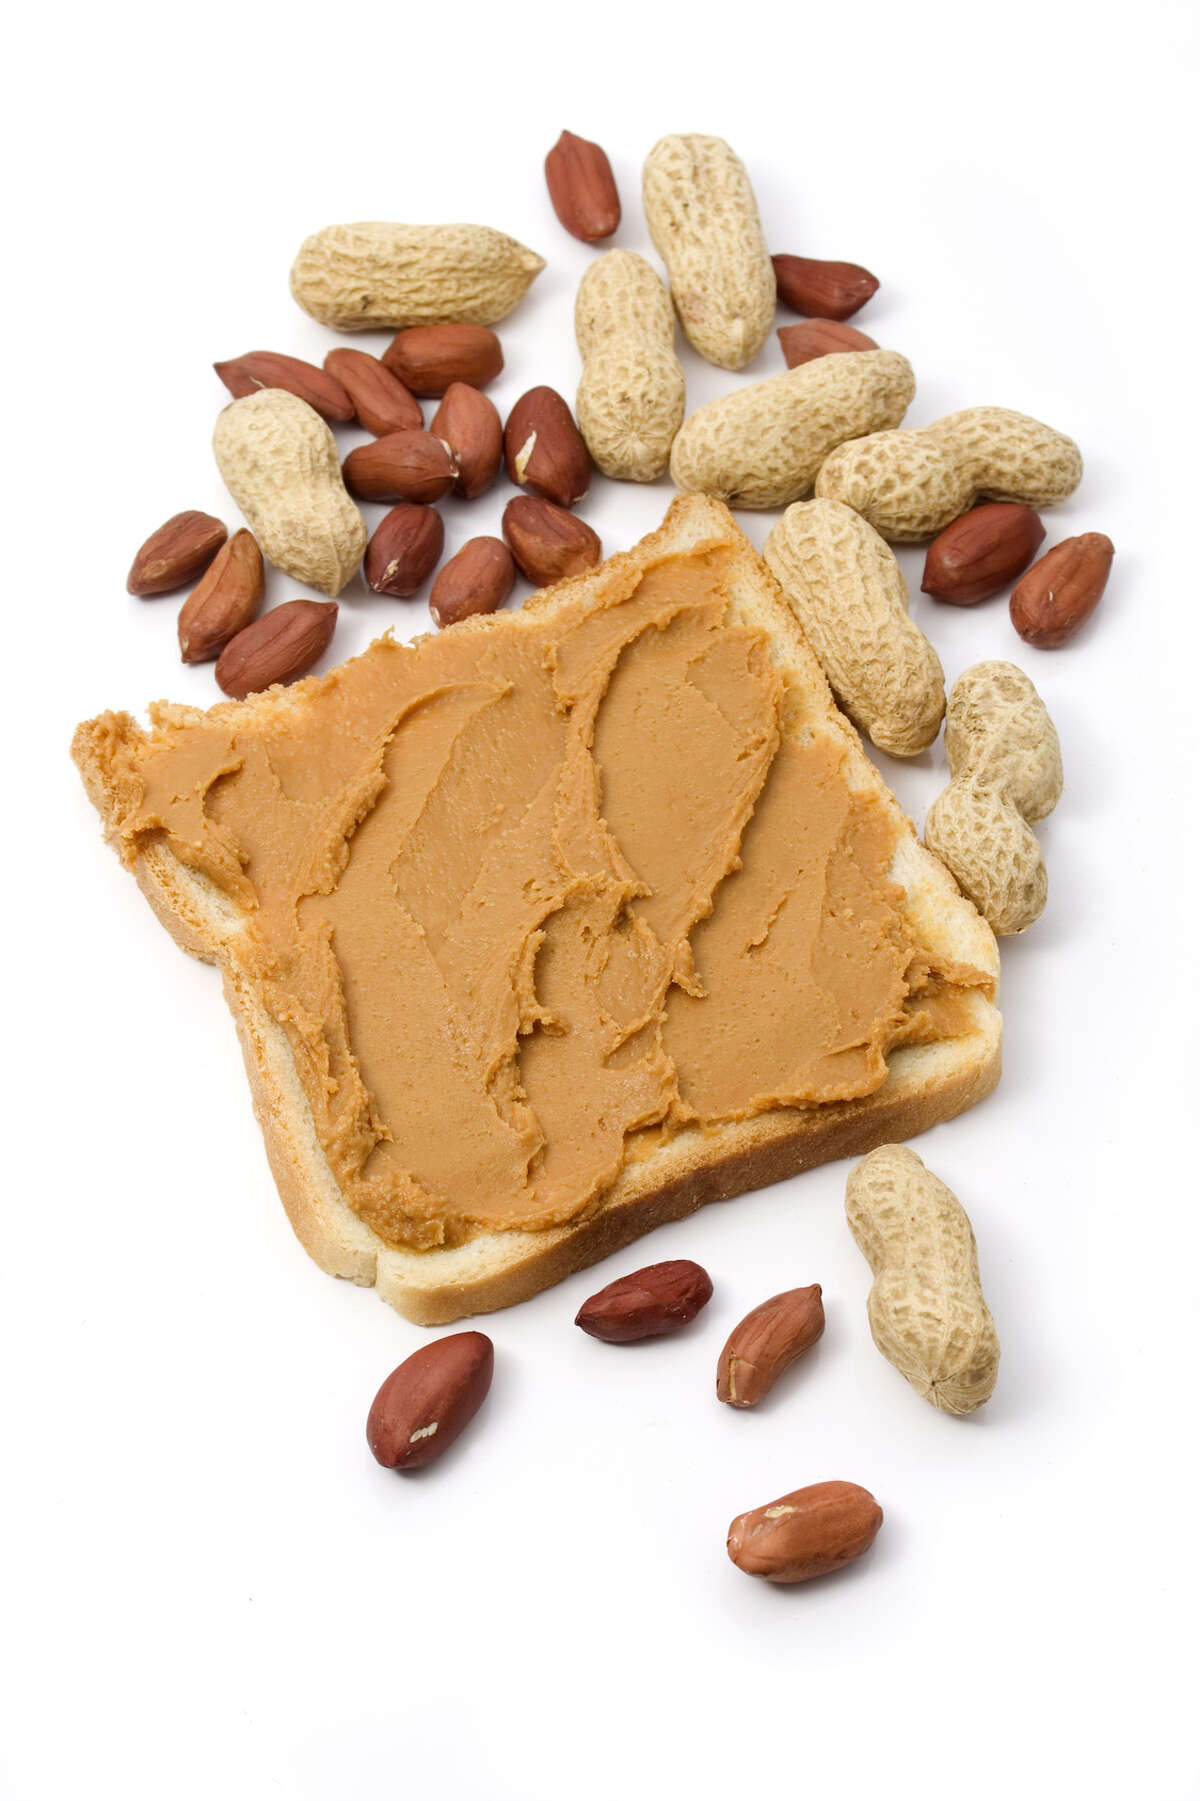 North America's top 10 snacks 9: Peanut butter